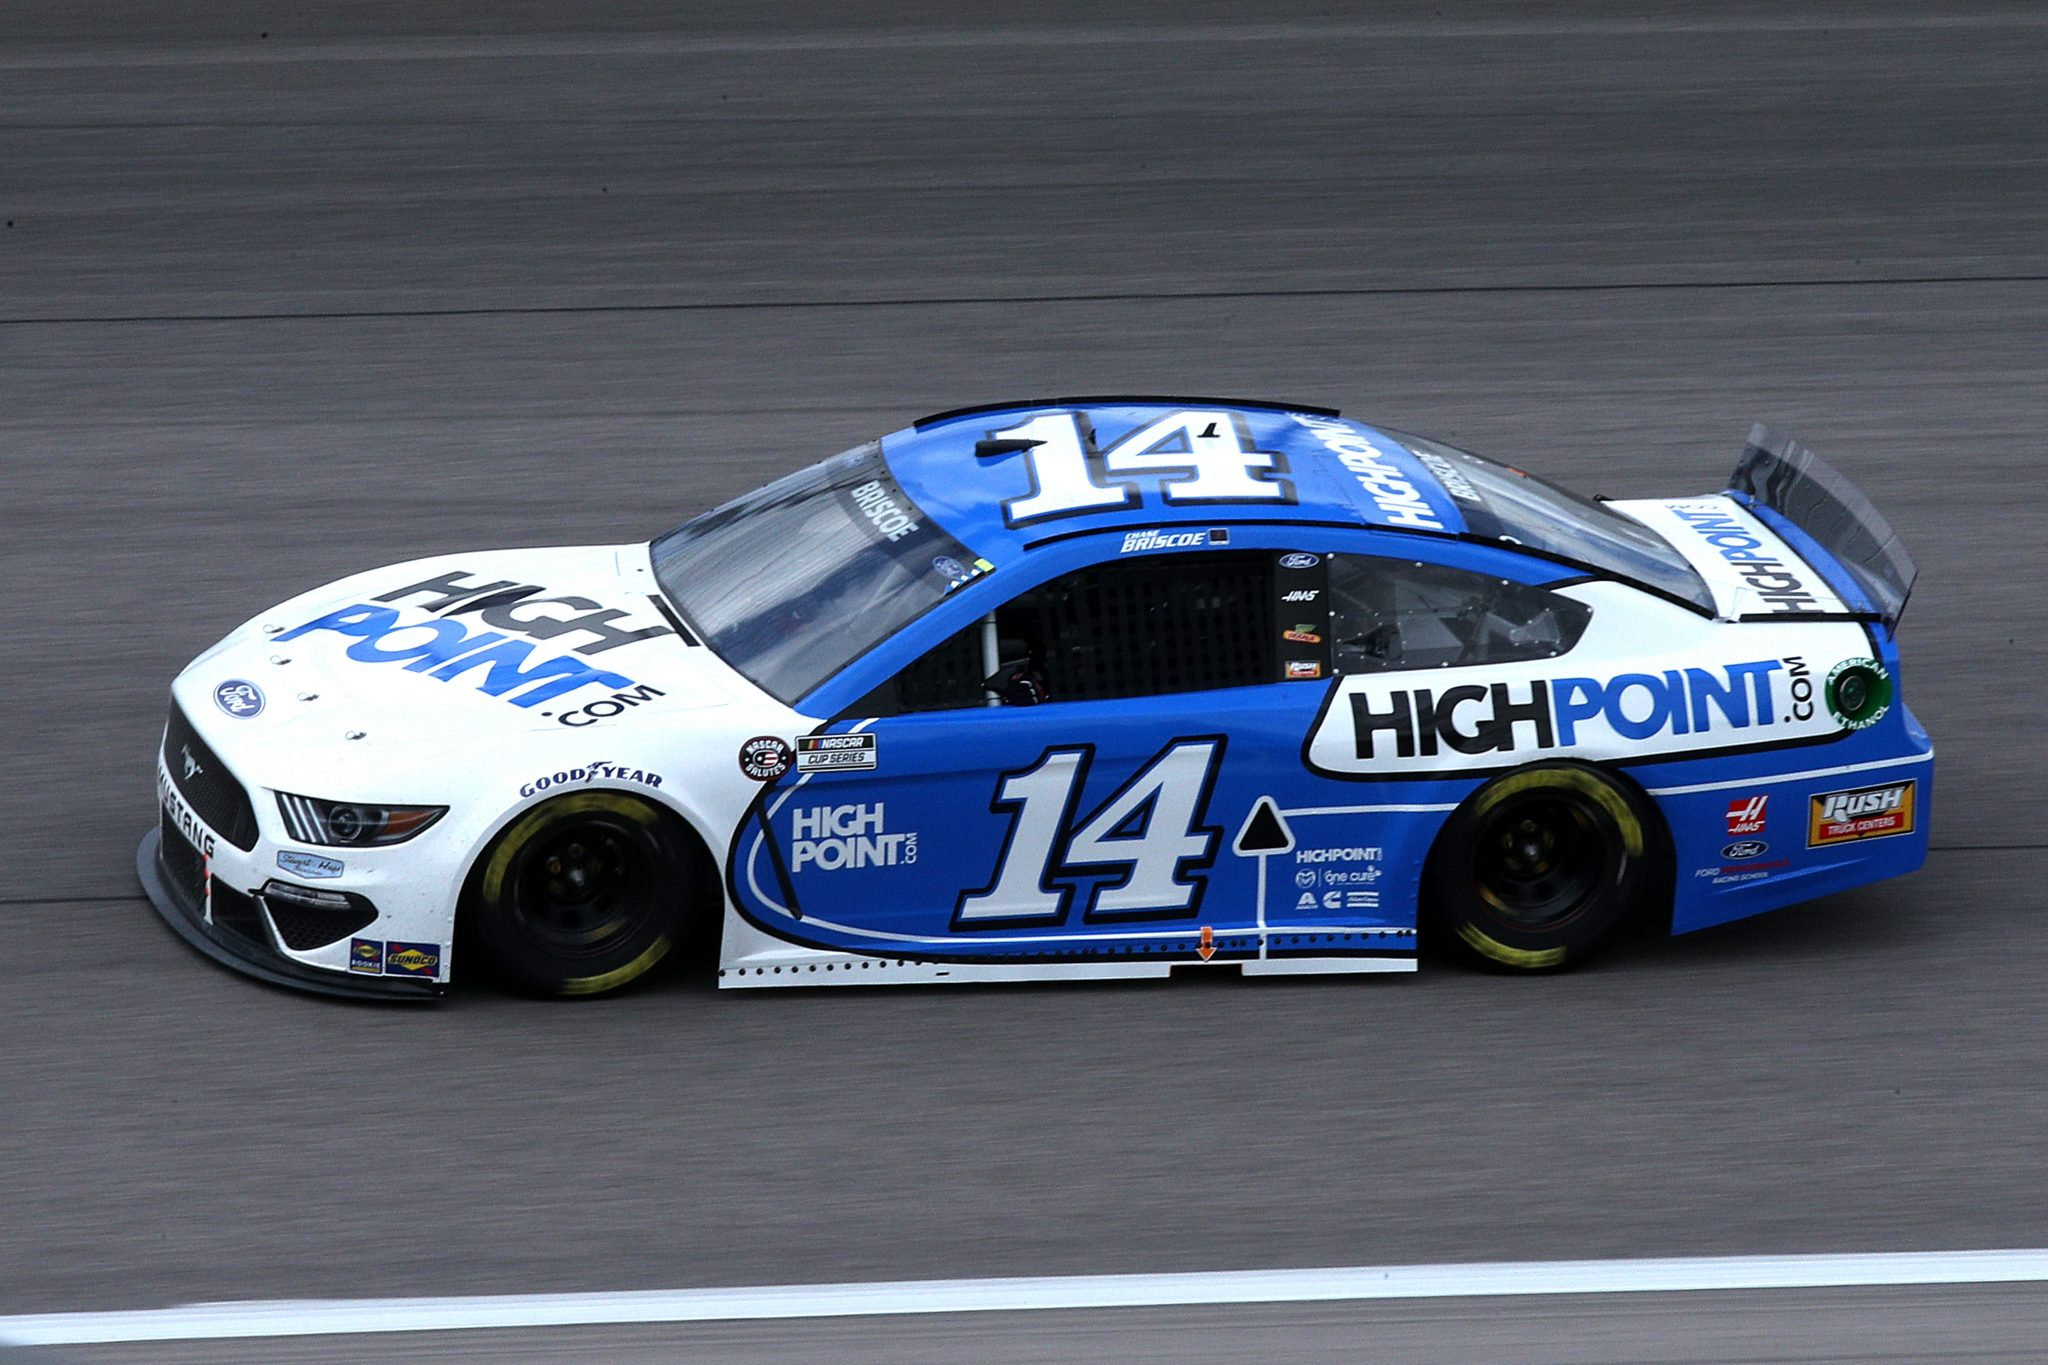 KANSAS CITY, KANSAS - MAY 02: Chase Briscoe, driver of the #14 HighPoint.com Ford, drives during the NASCAR Cup Series Buschy McBusch Race 400 at Kansas Speedway on May 02, 2021 in Kansas City, Kansas. (Photo by Sean Gardner/Getty Images) | Getty Images